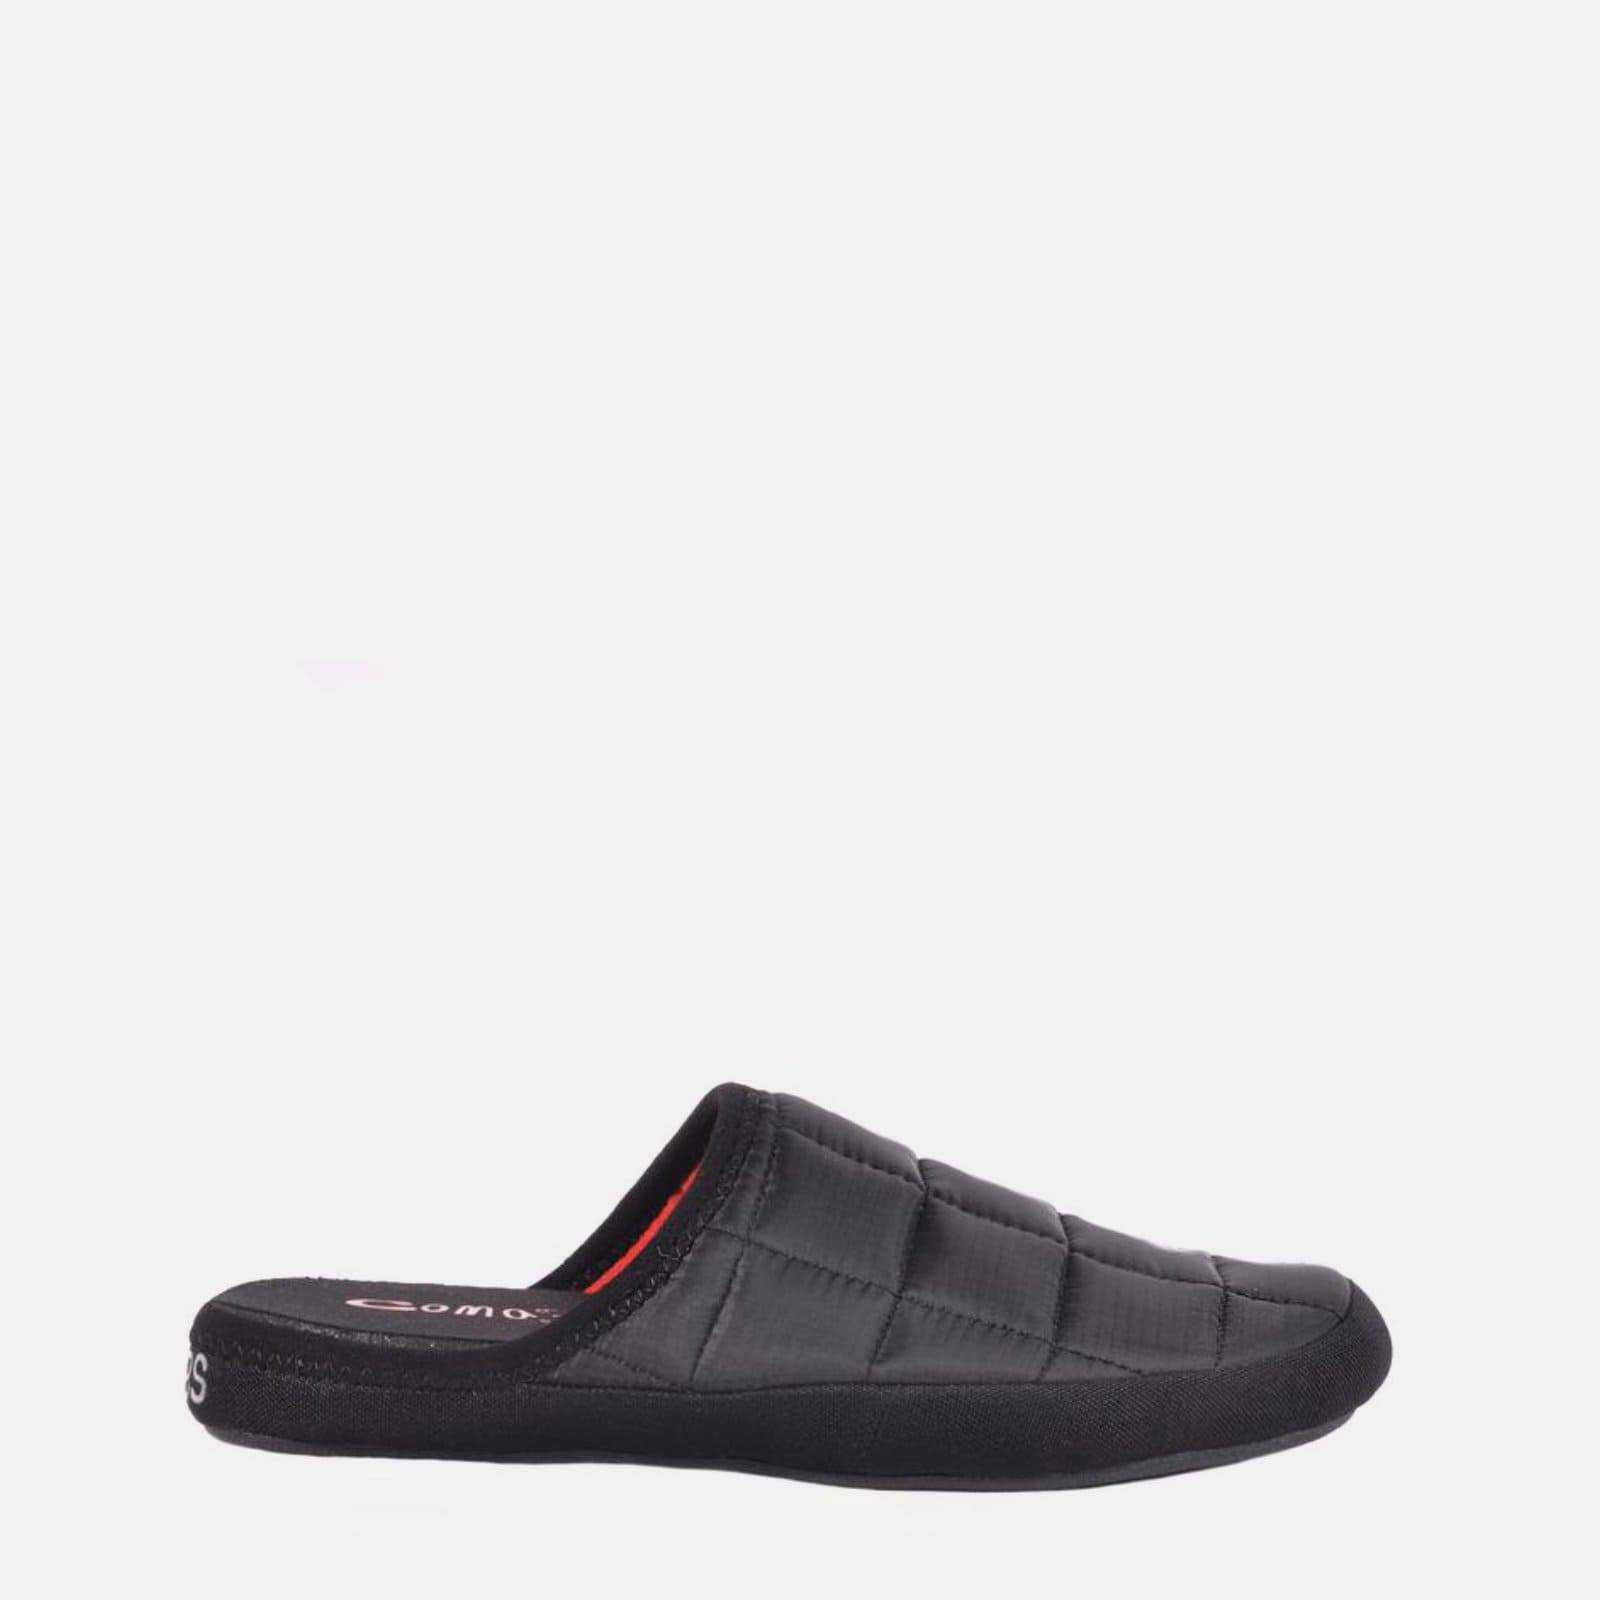 Coma Toes Footwear Tokyoes Black/Red